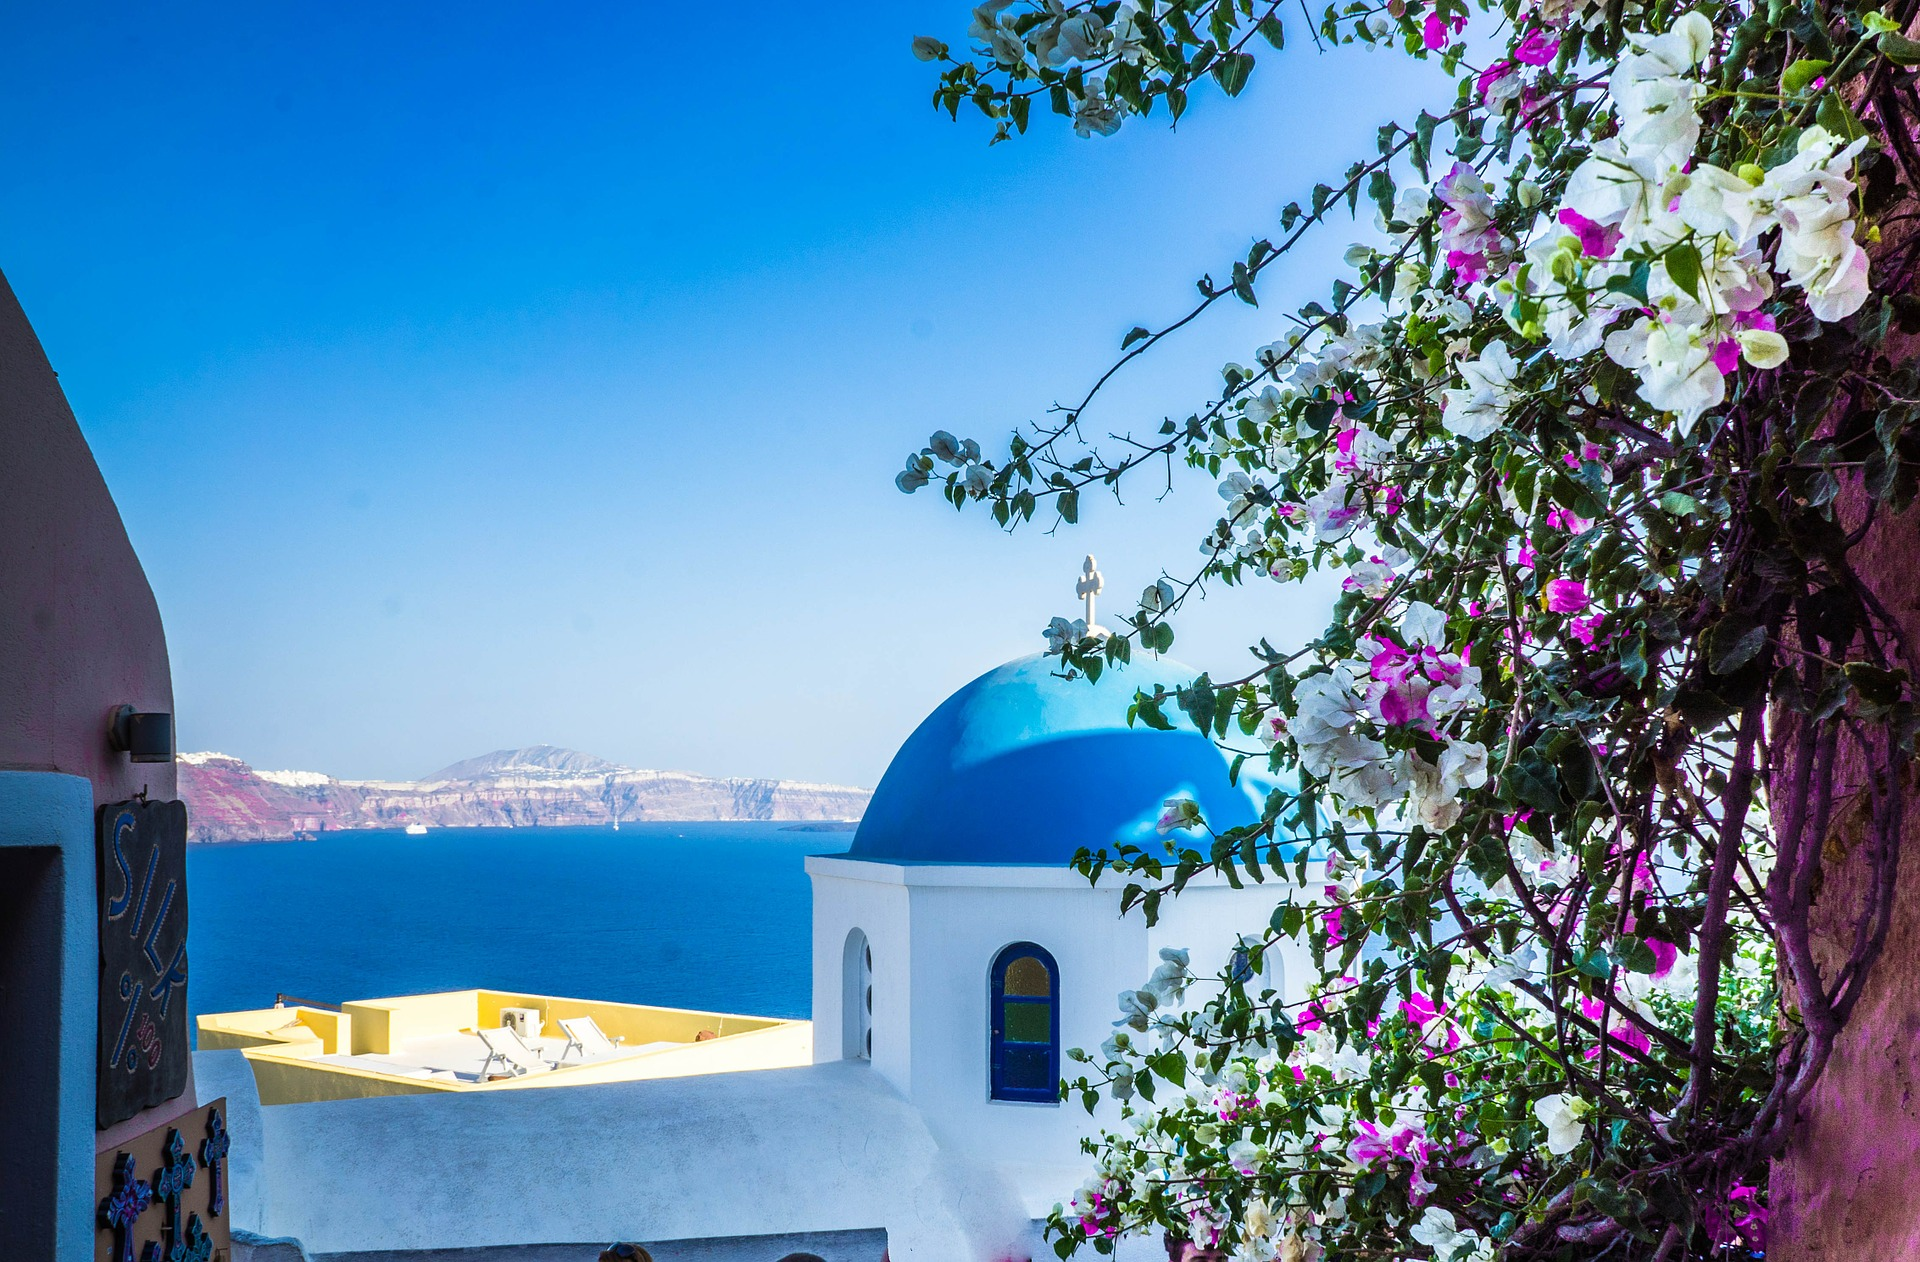 santorini blue white architecture